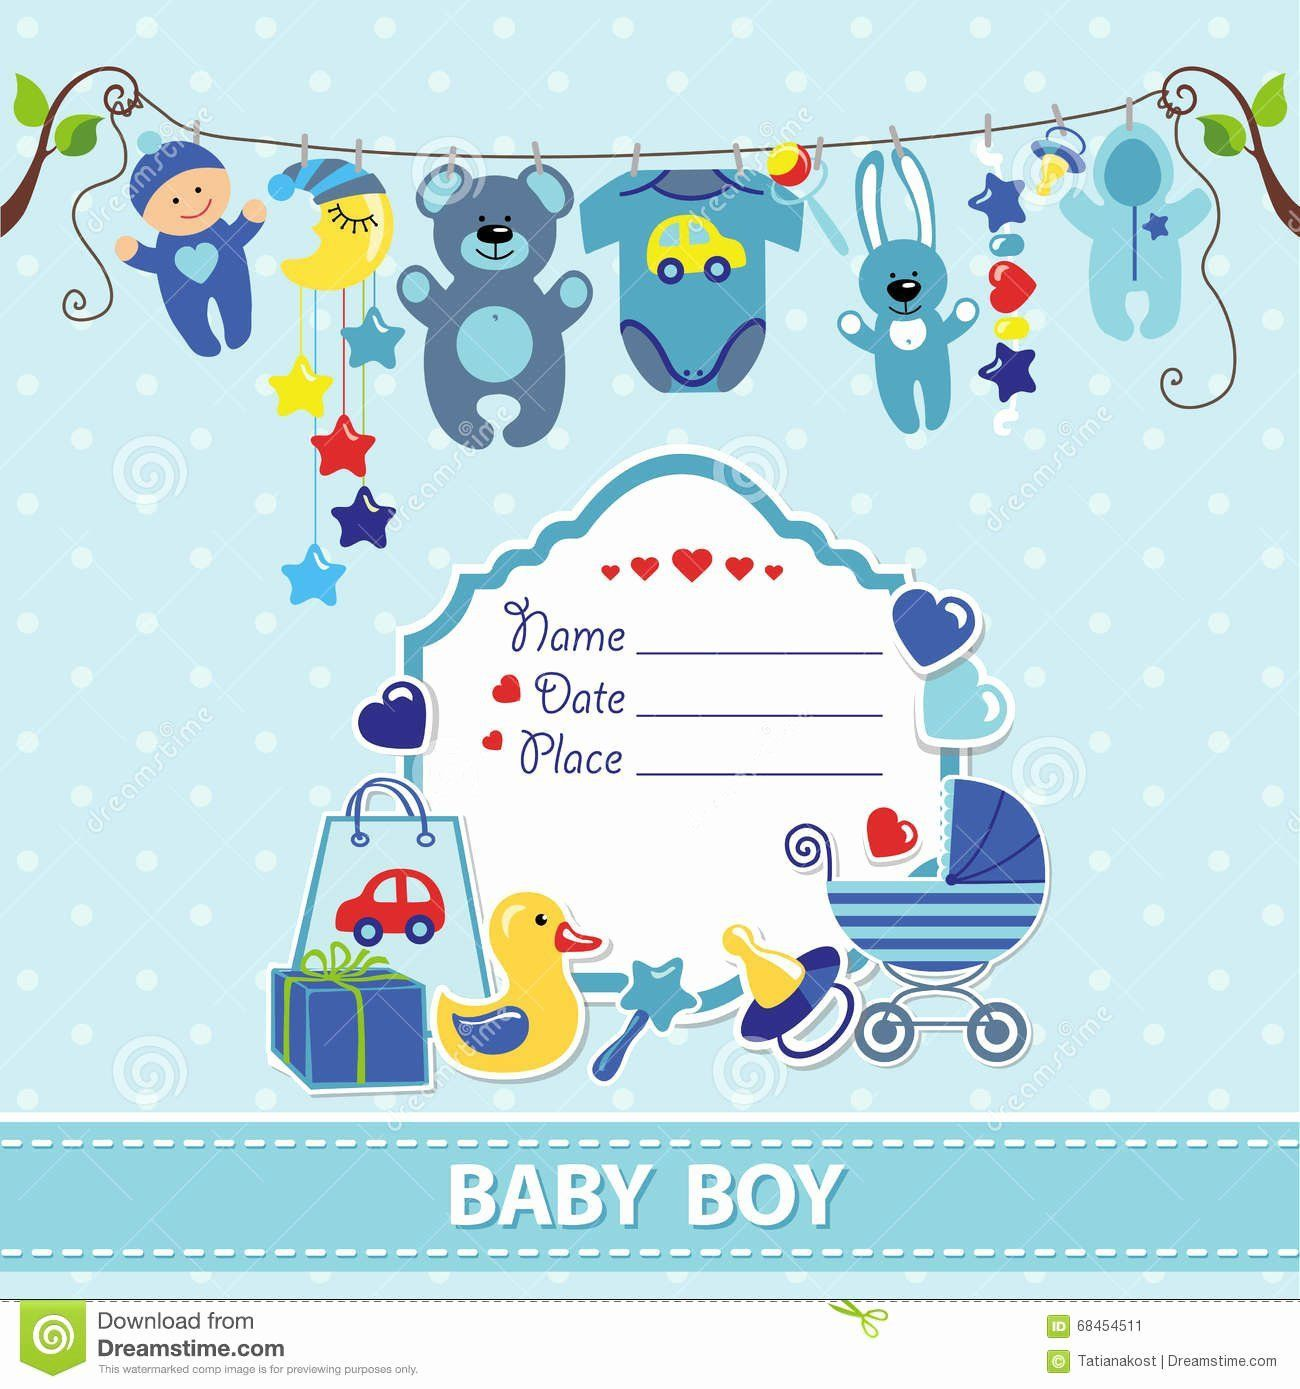 000 Fearsome Free Printable Baby Shower Card For Boy High Definition  BingoFull